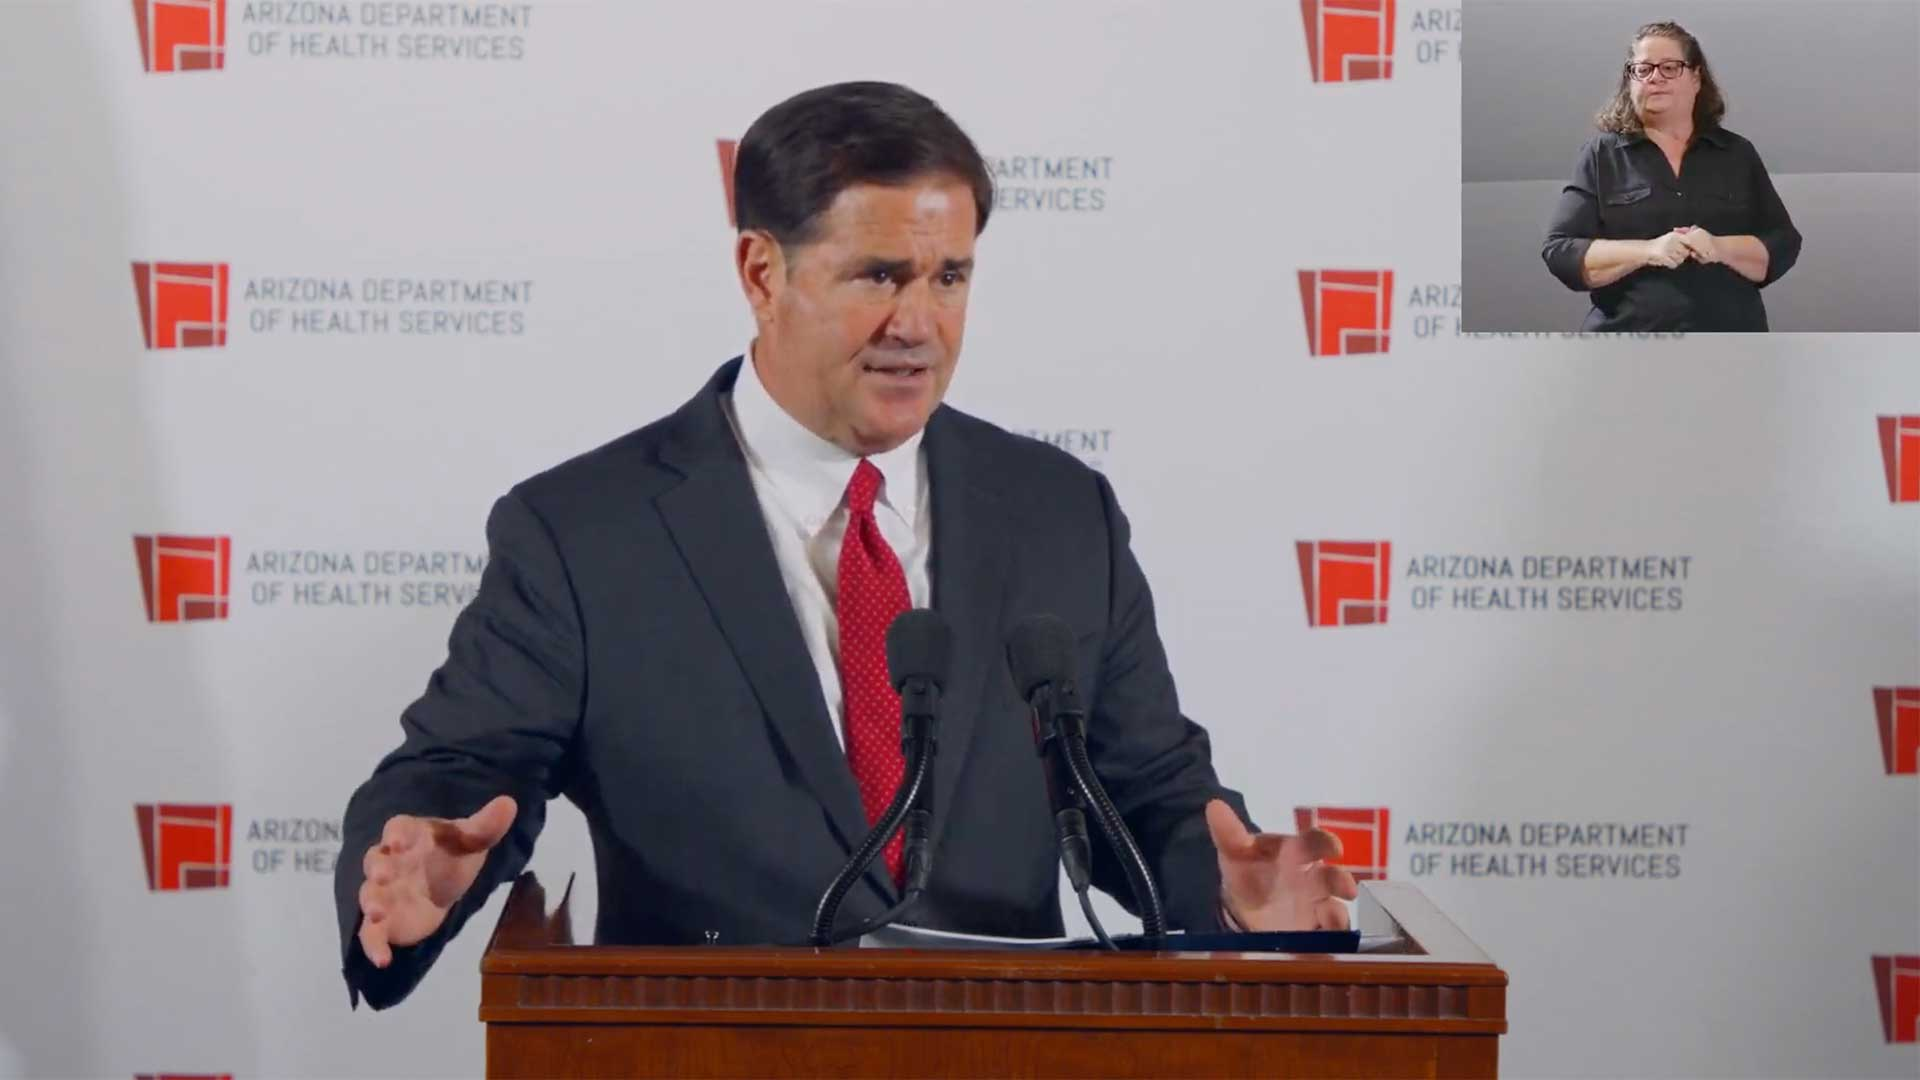 Gov. Doug Ducey at a Nov. 18, 2020 media briefing on the state's COVID-19 response.